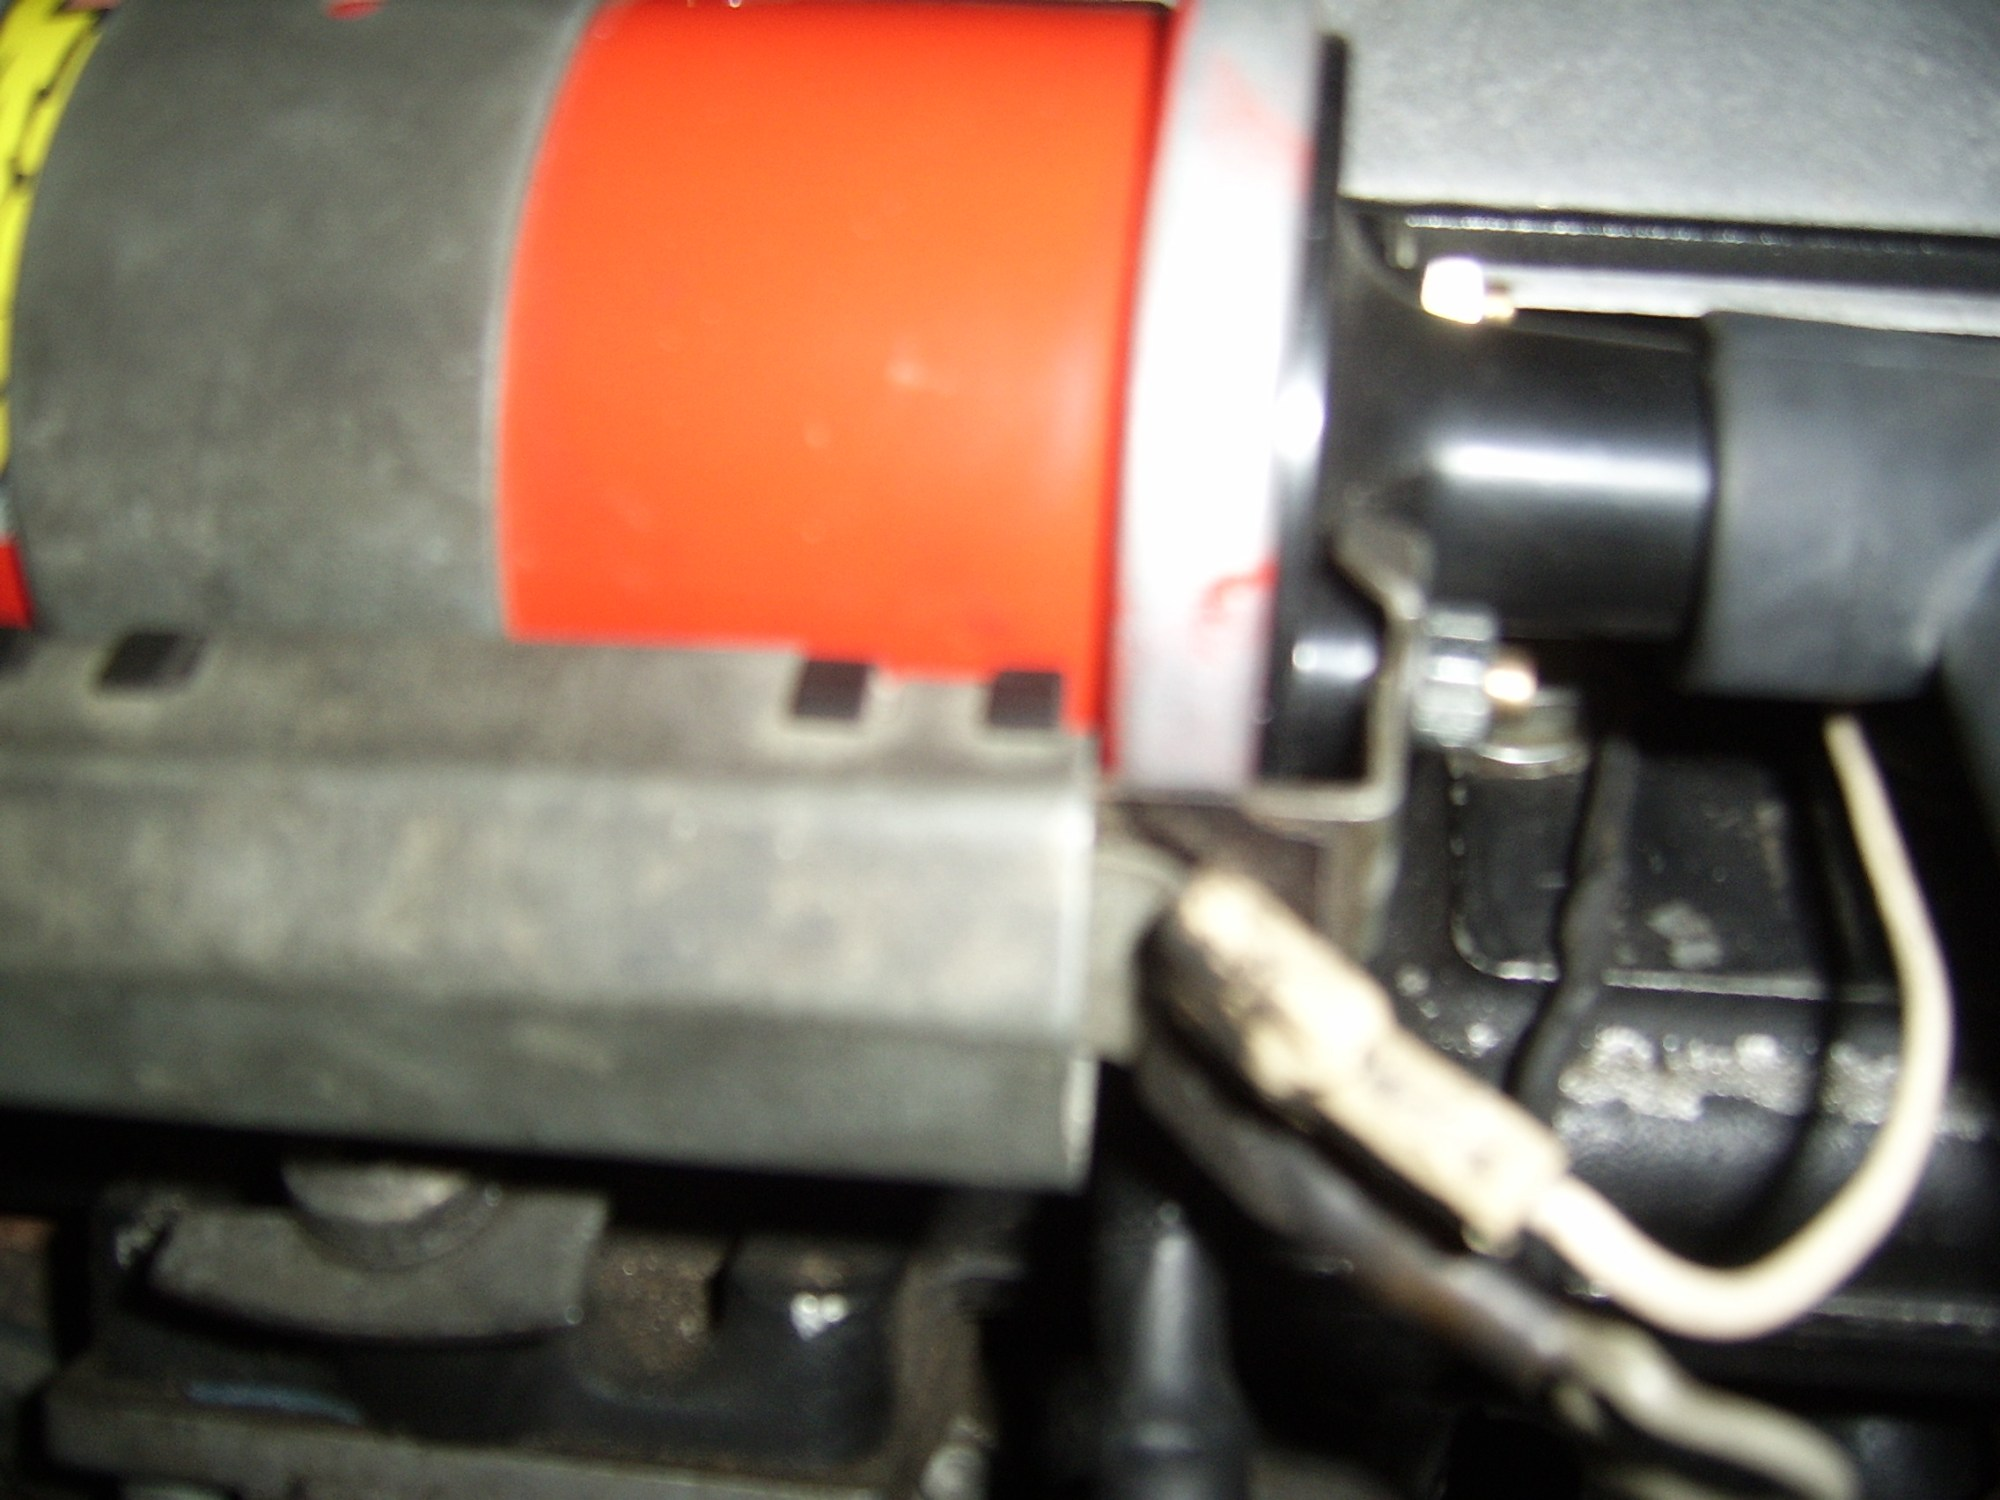 hight resolution of  86 xj6 ignition troubleshooting ssa41869 jpg